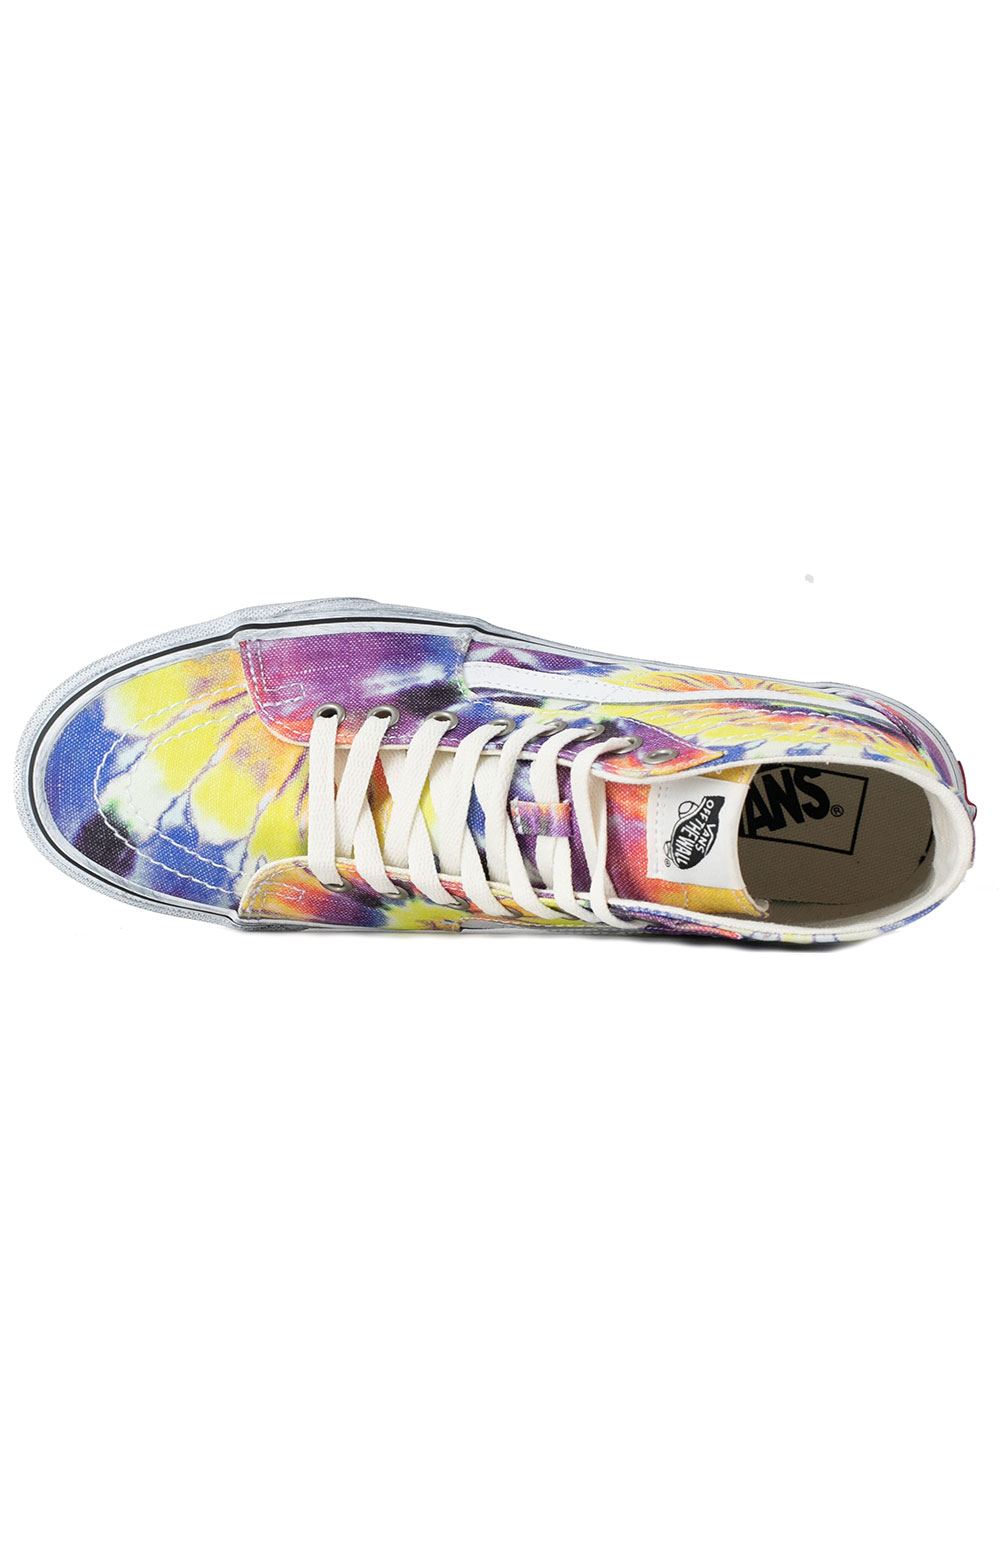 (U1619X) Washed Sk8-Hi Tapered Shoes - Tie-Dye/True White  3